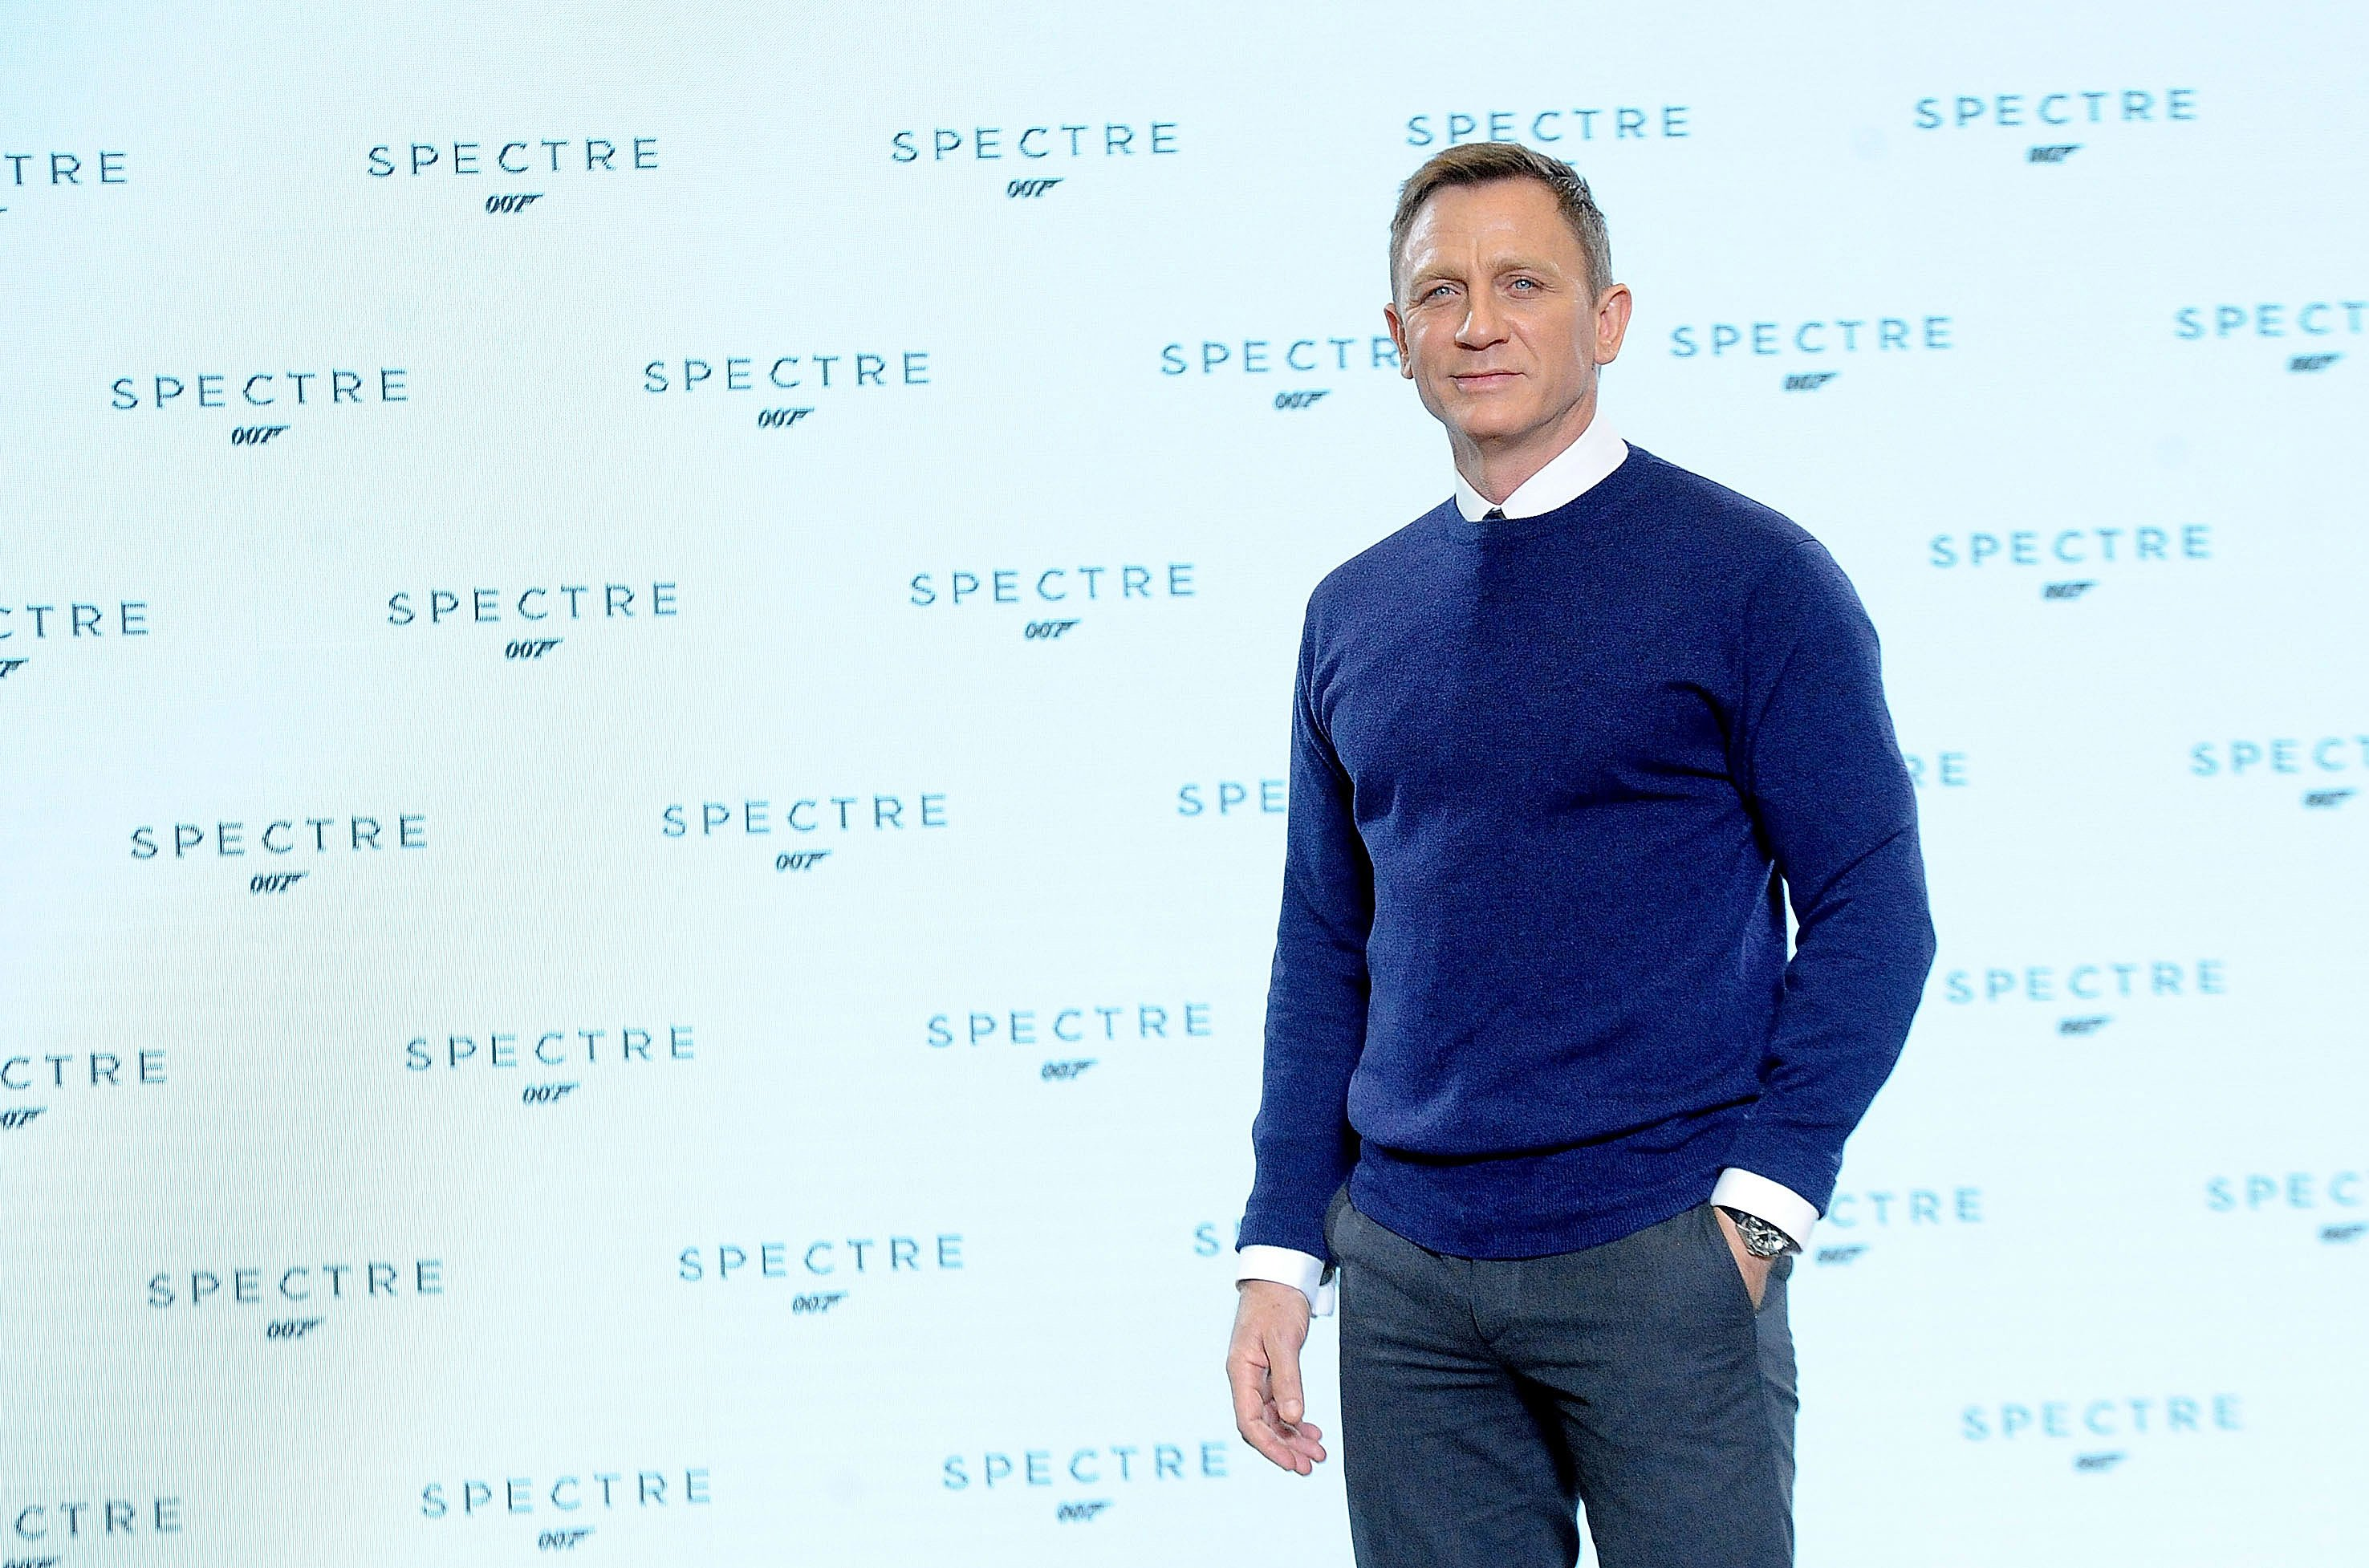 """Daniel Craig attends a photocall for the start of filming """"Spectre"""" in Iver Heath, England on December 4, 2014   Photo: Getty Images"""